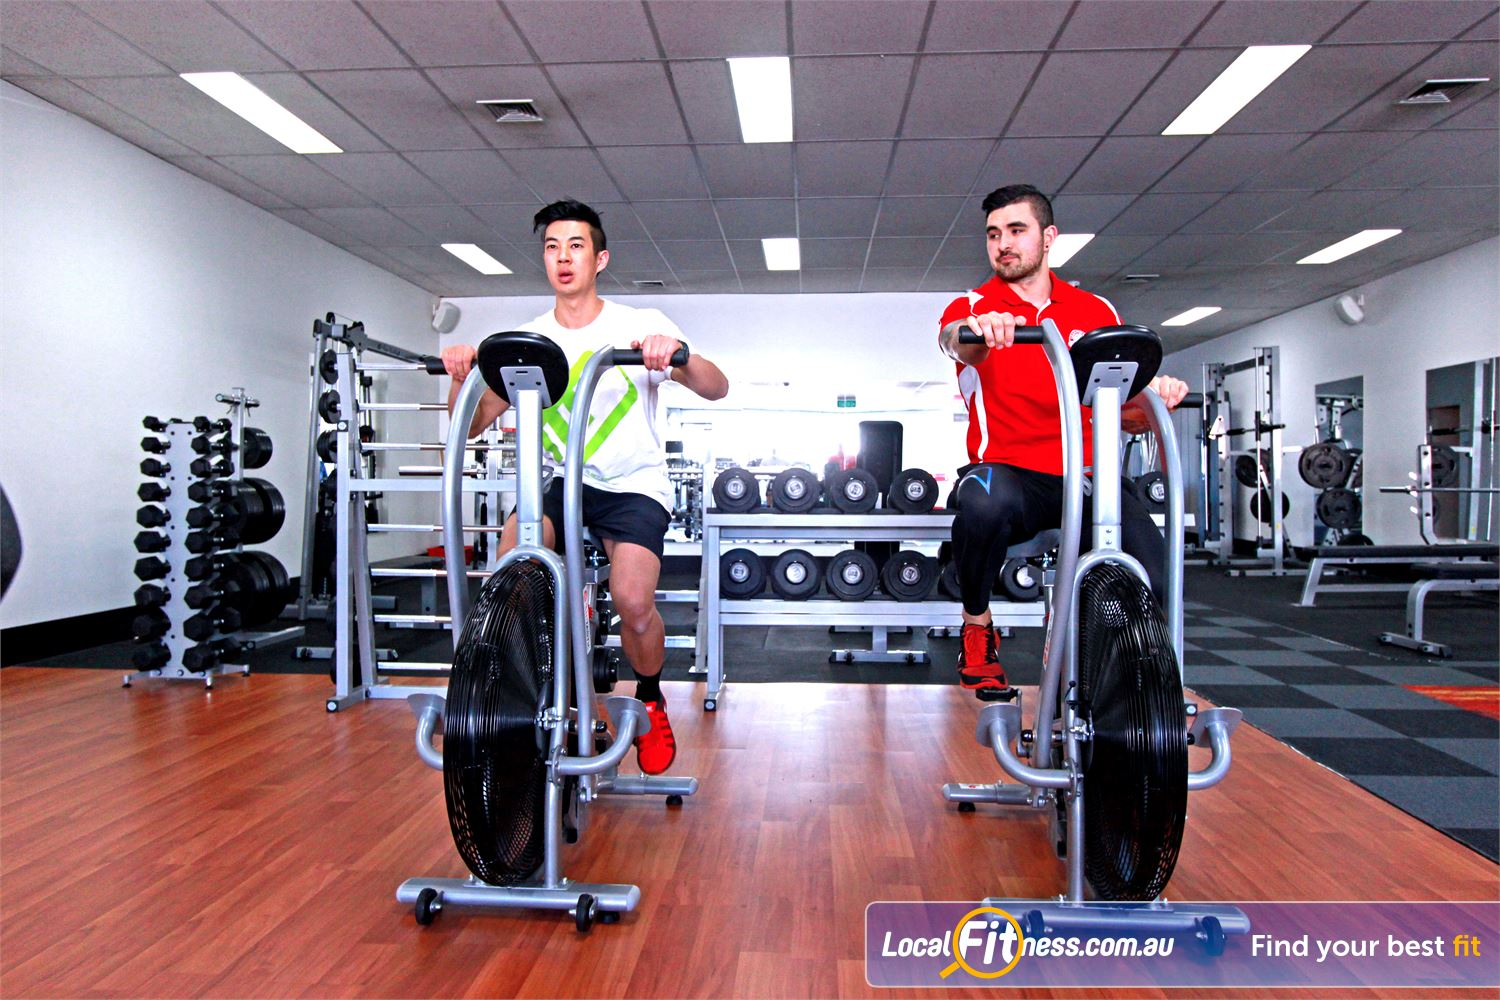 Carlton Fitness Gym Carlton North Airdyne bikes only at Lean For Life Carlton North gym.